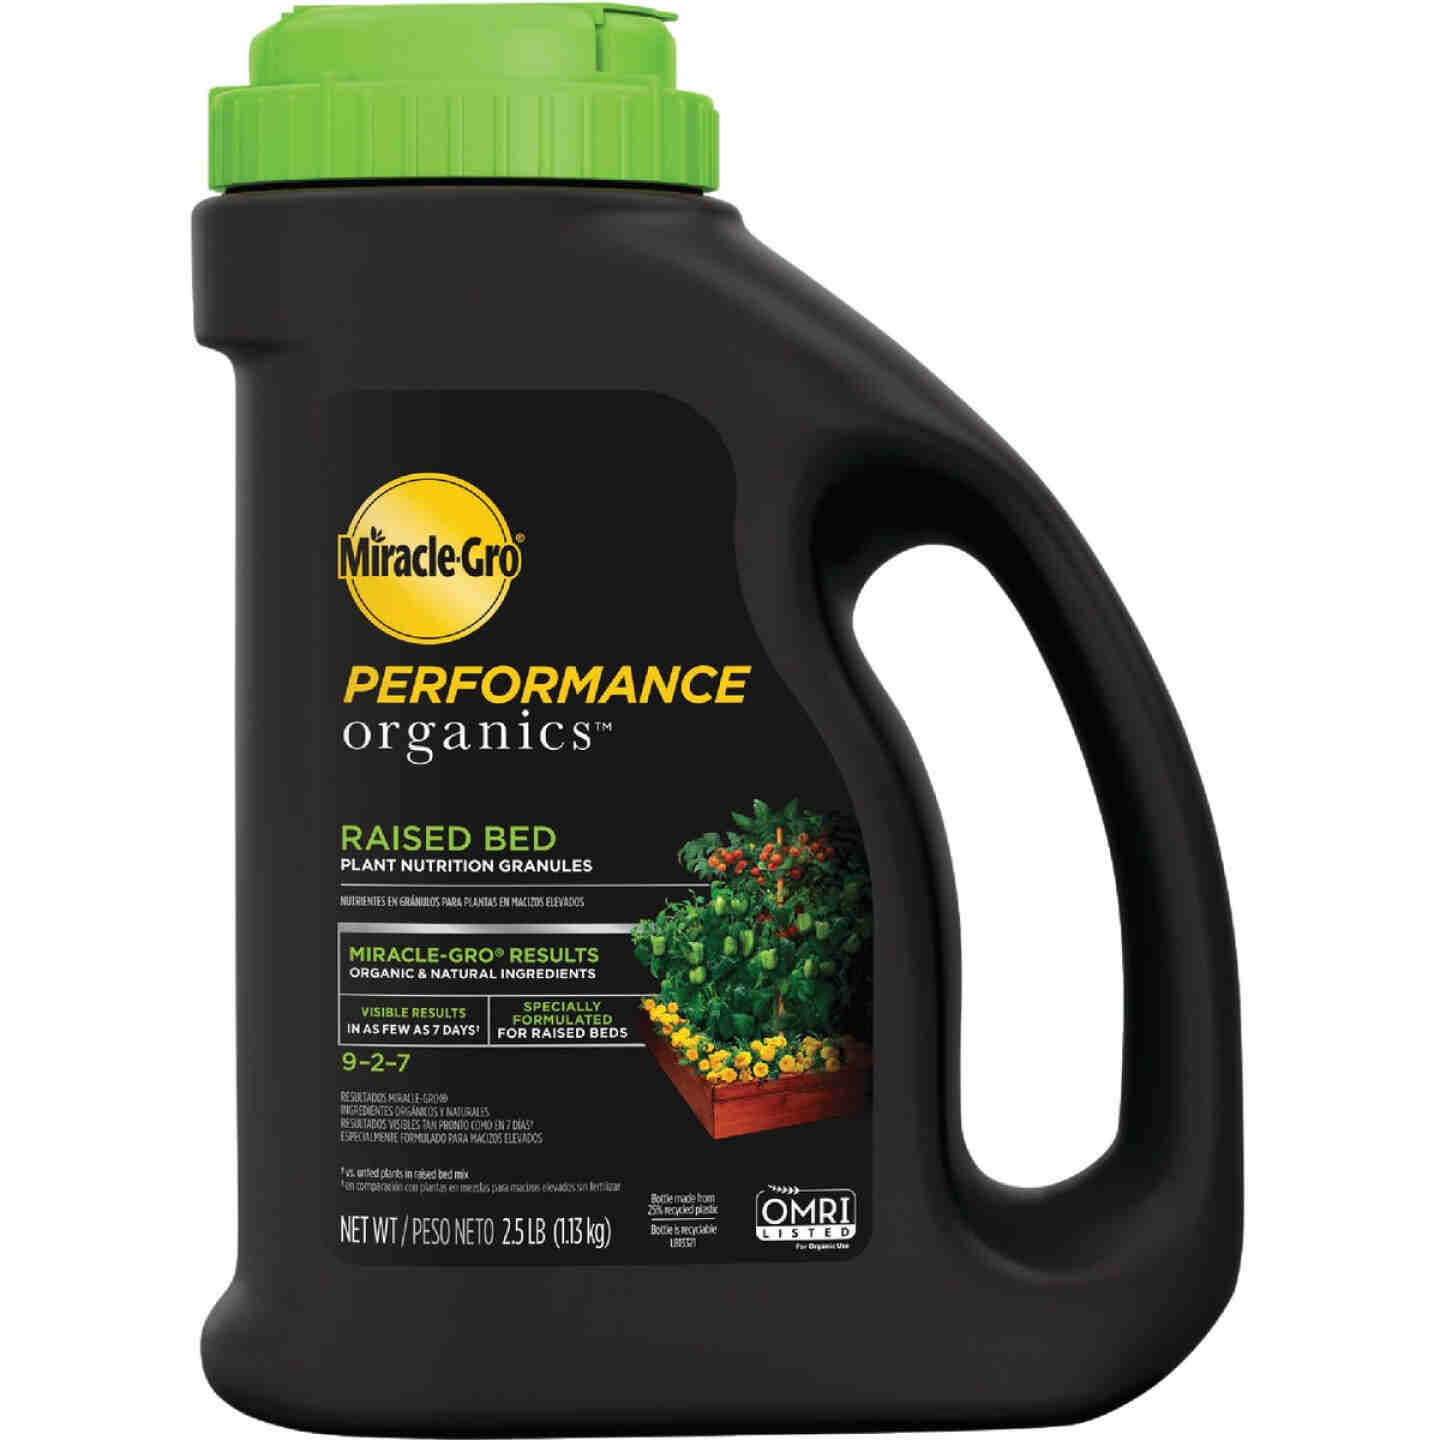 Miracle-Gro Performance Organics 2.5 Lb. 9-2-7 Plant Food for Raised Beds Image 1